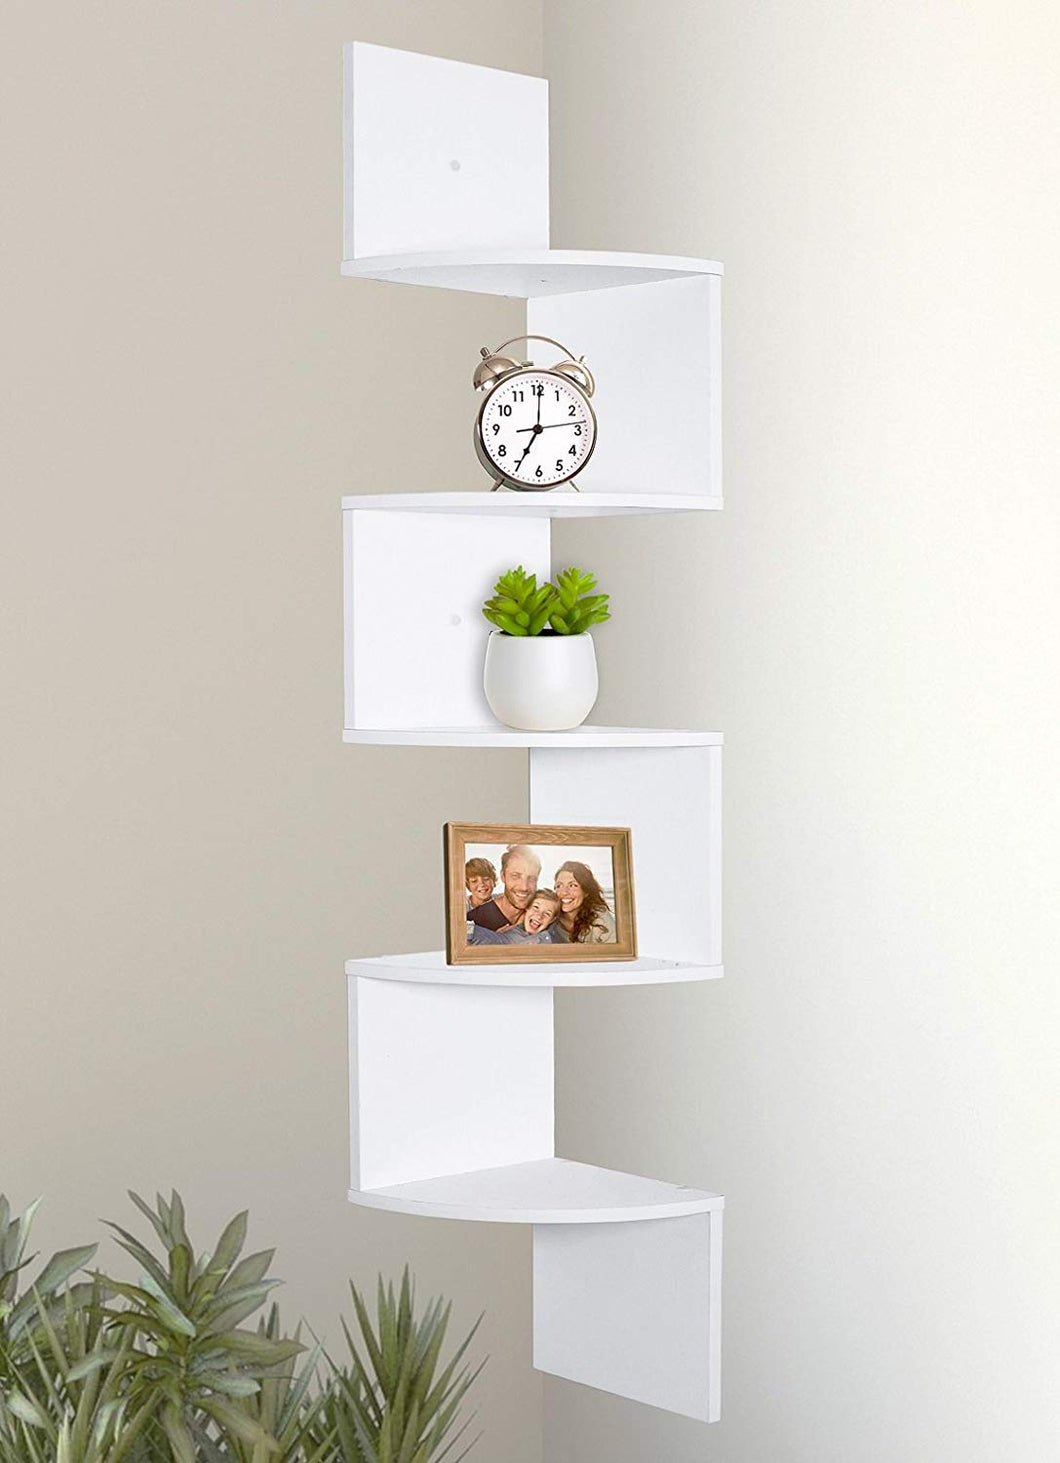 5 Tier Wall Mount Corner Shelves